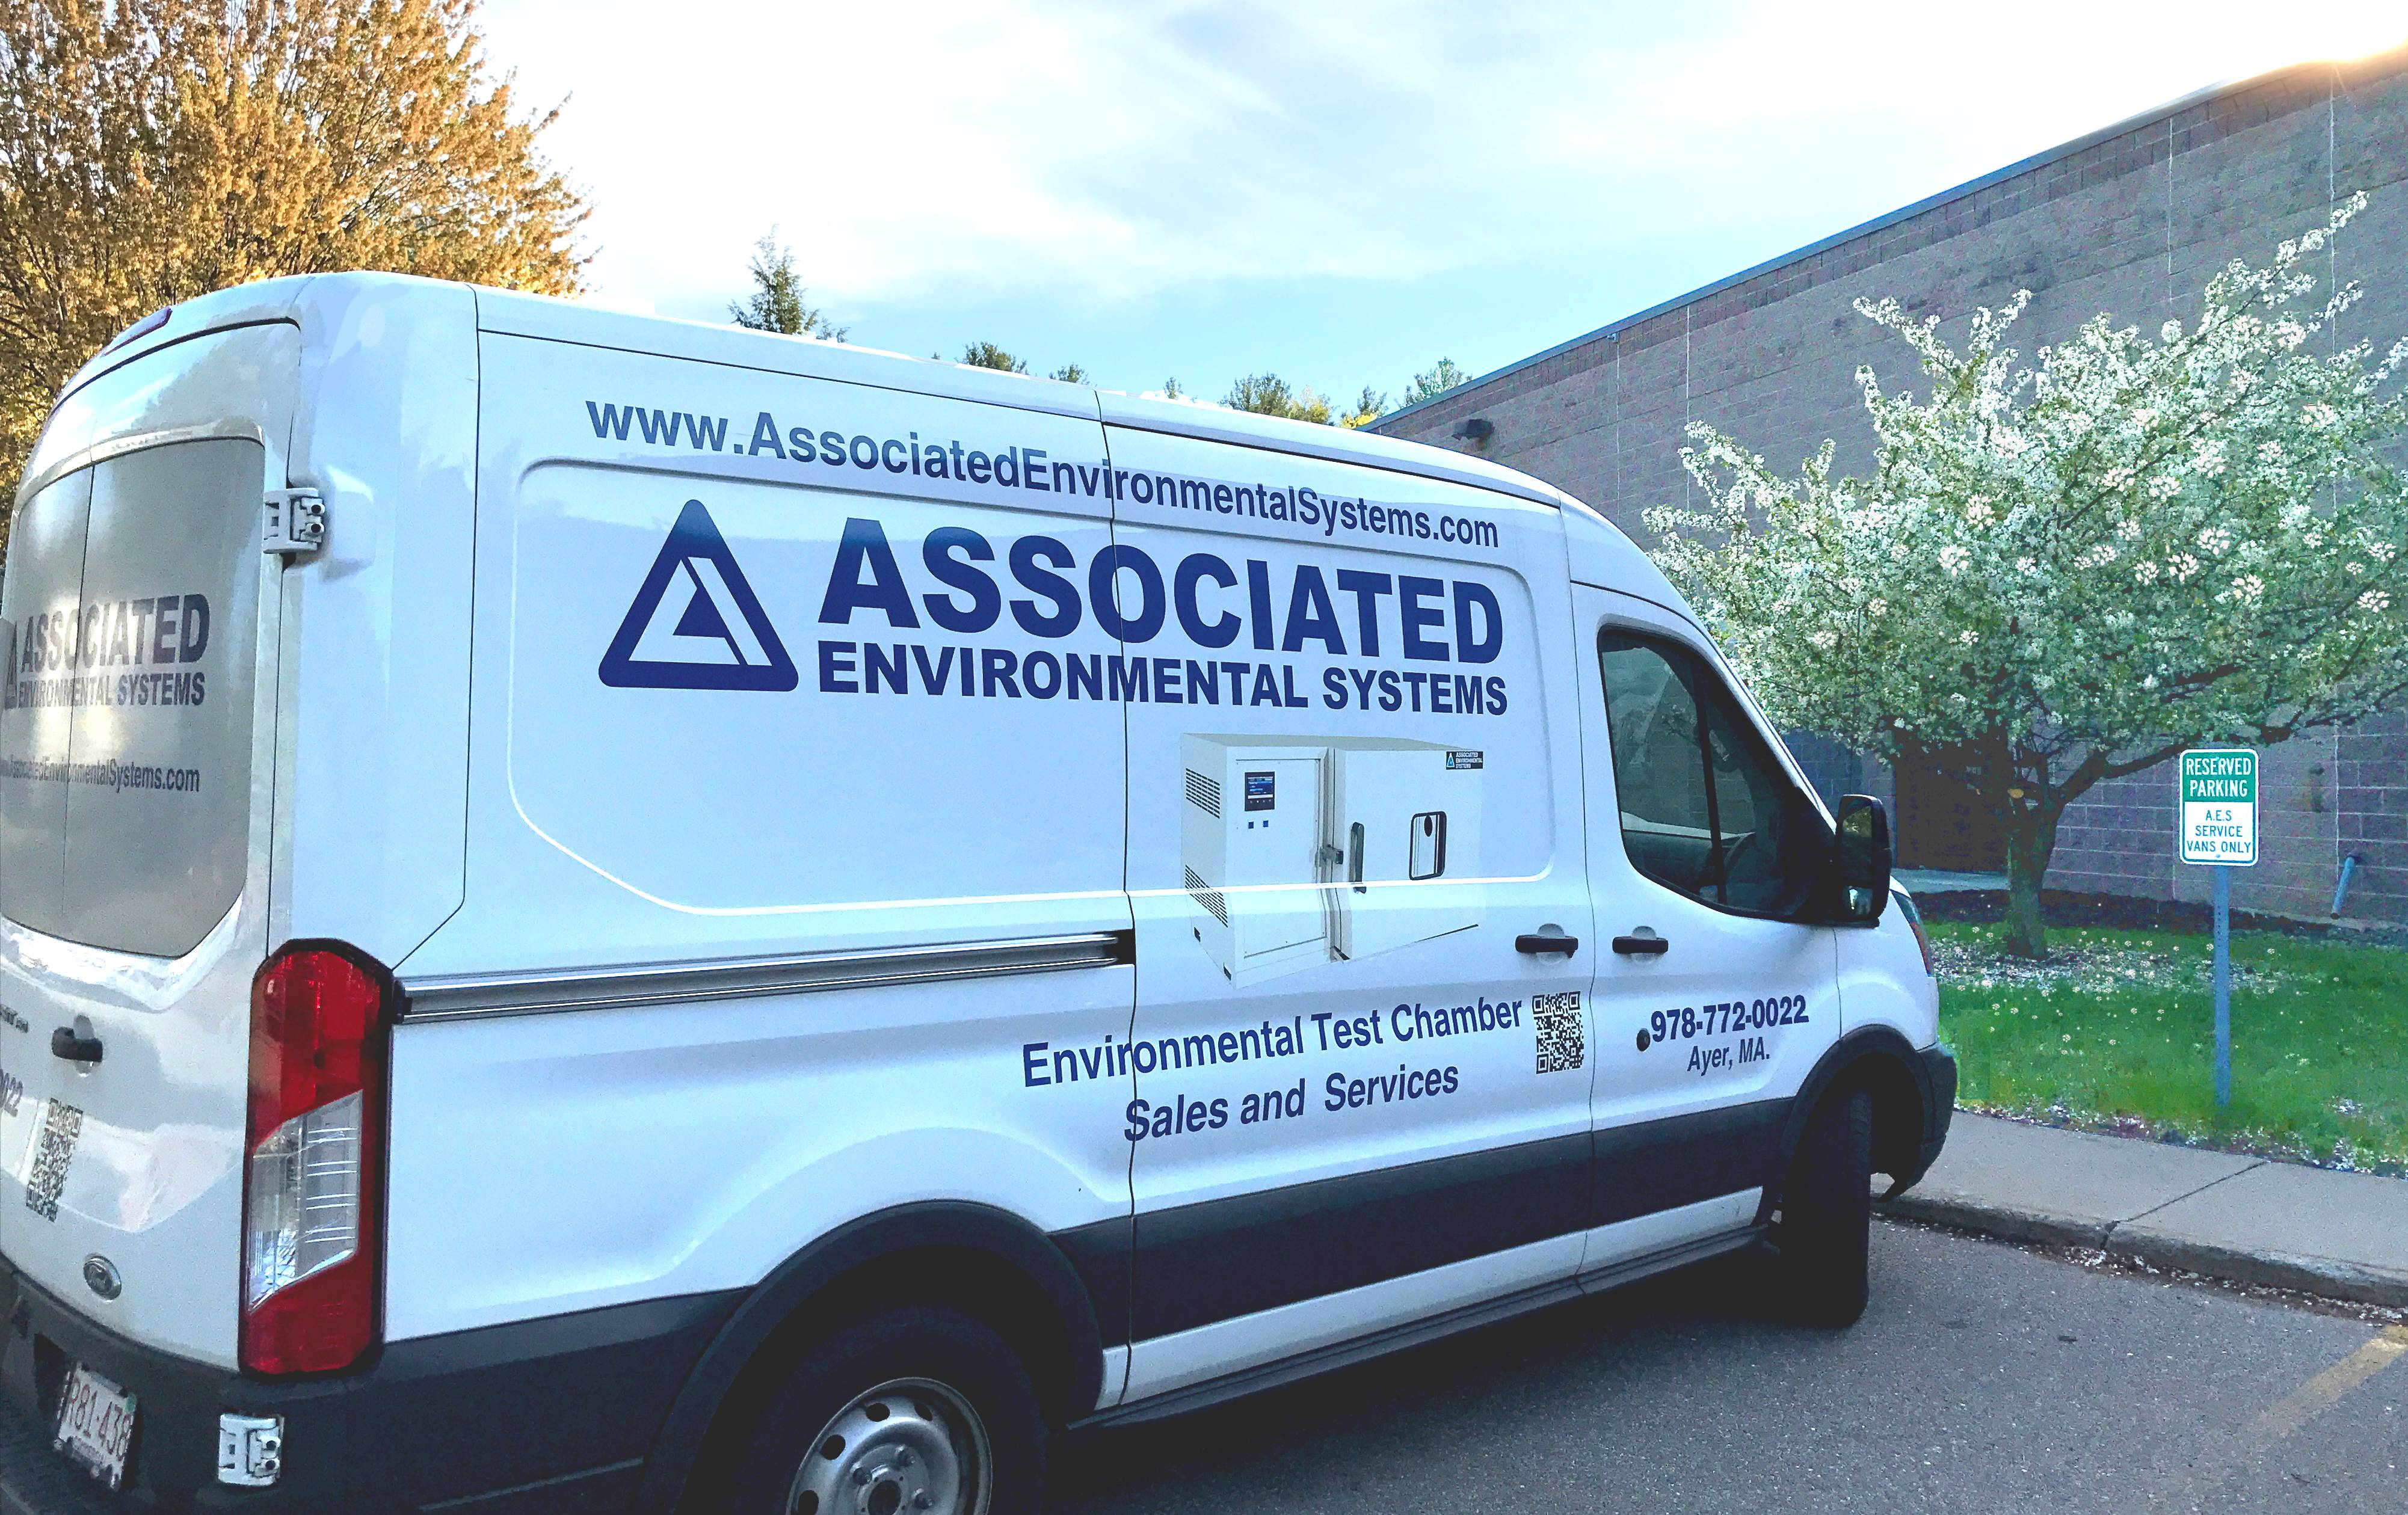 Associated Environmental Systems service career combines the best of independence and collaboration.